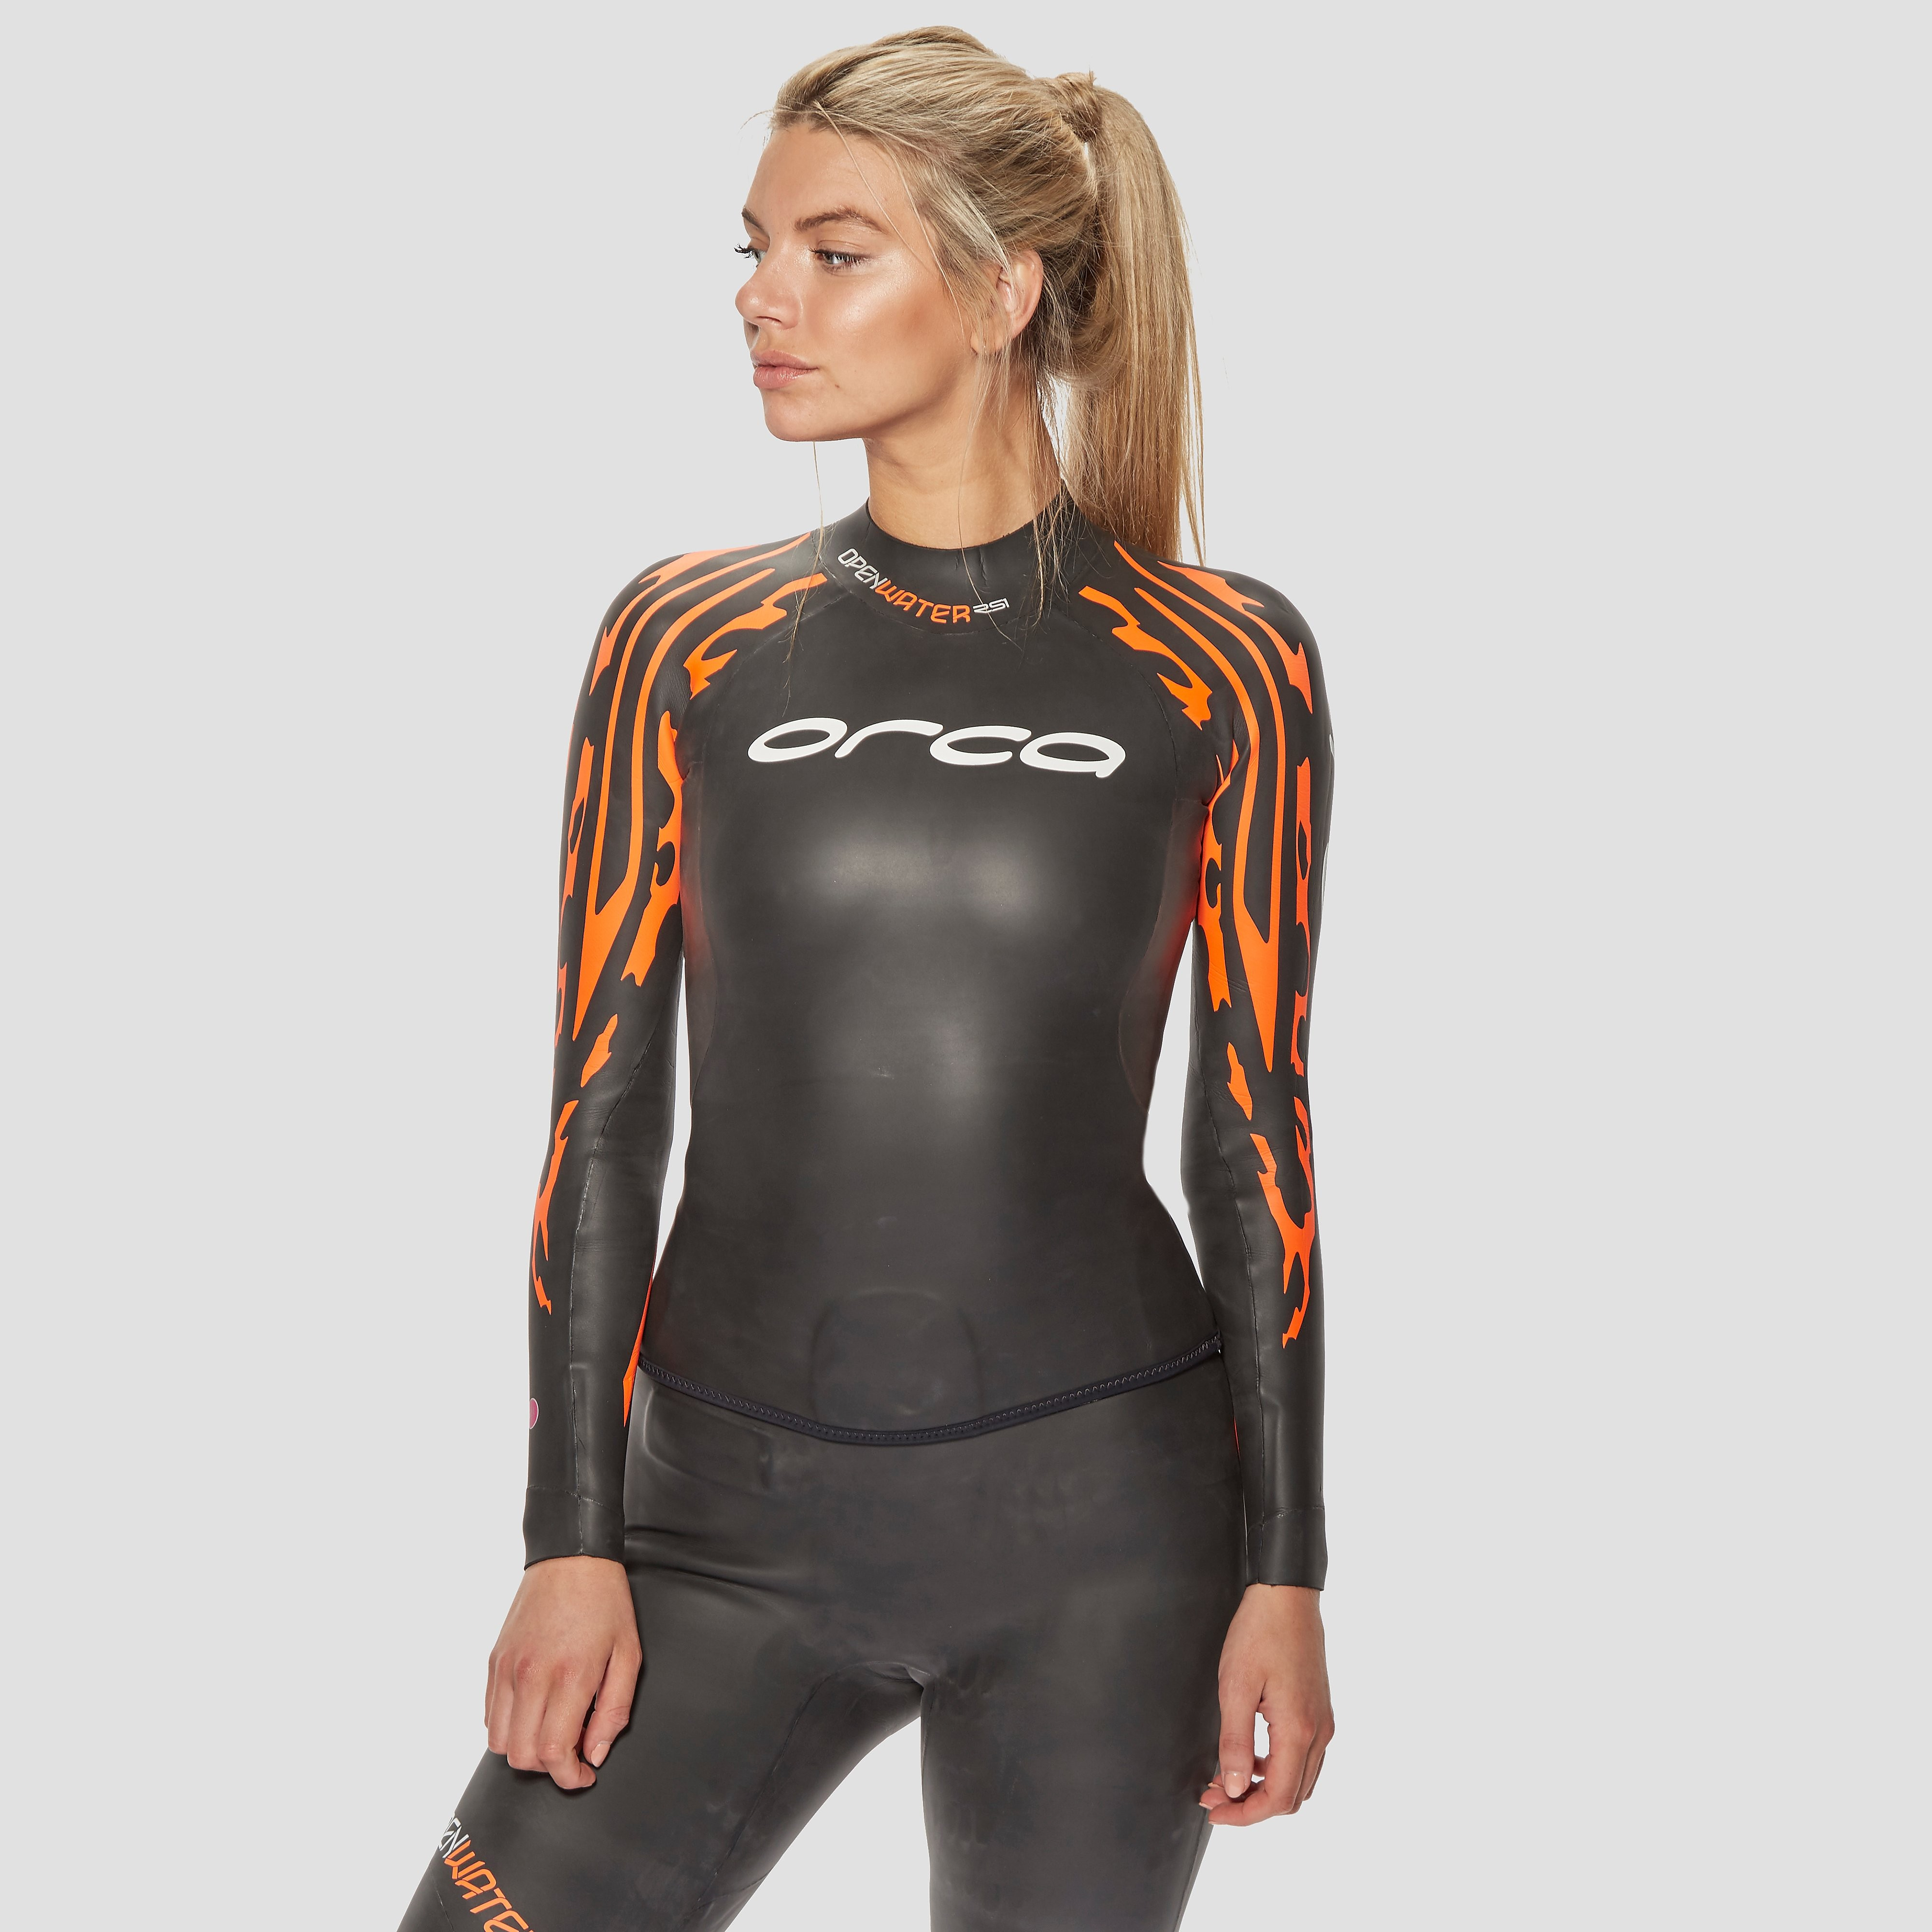 Orca RS1 Openwater Women's Wetsuit Top